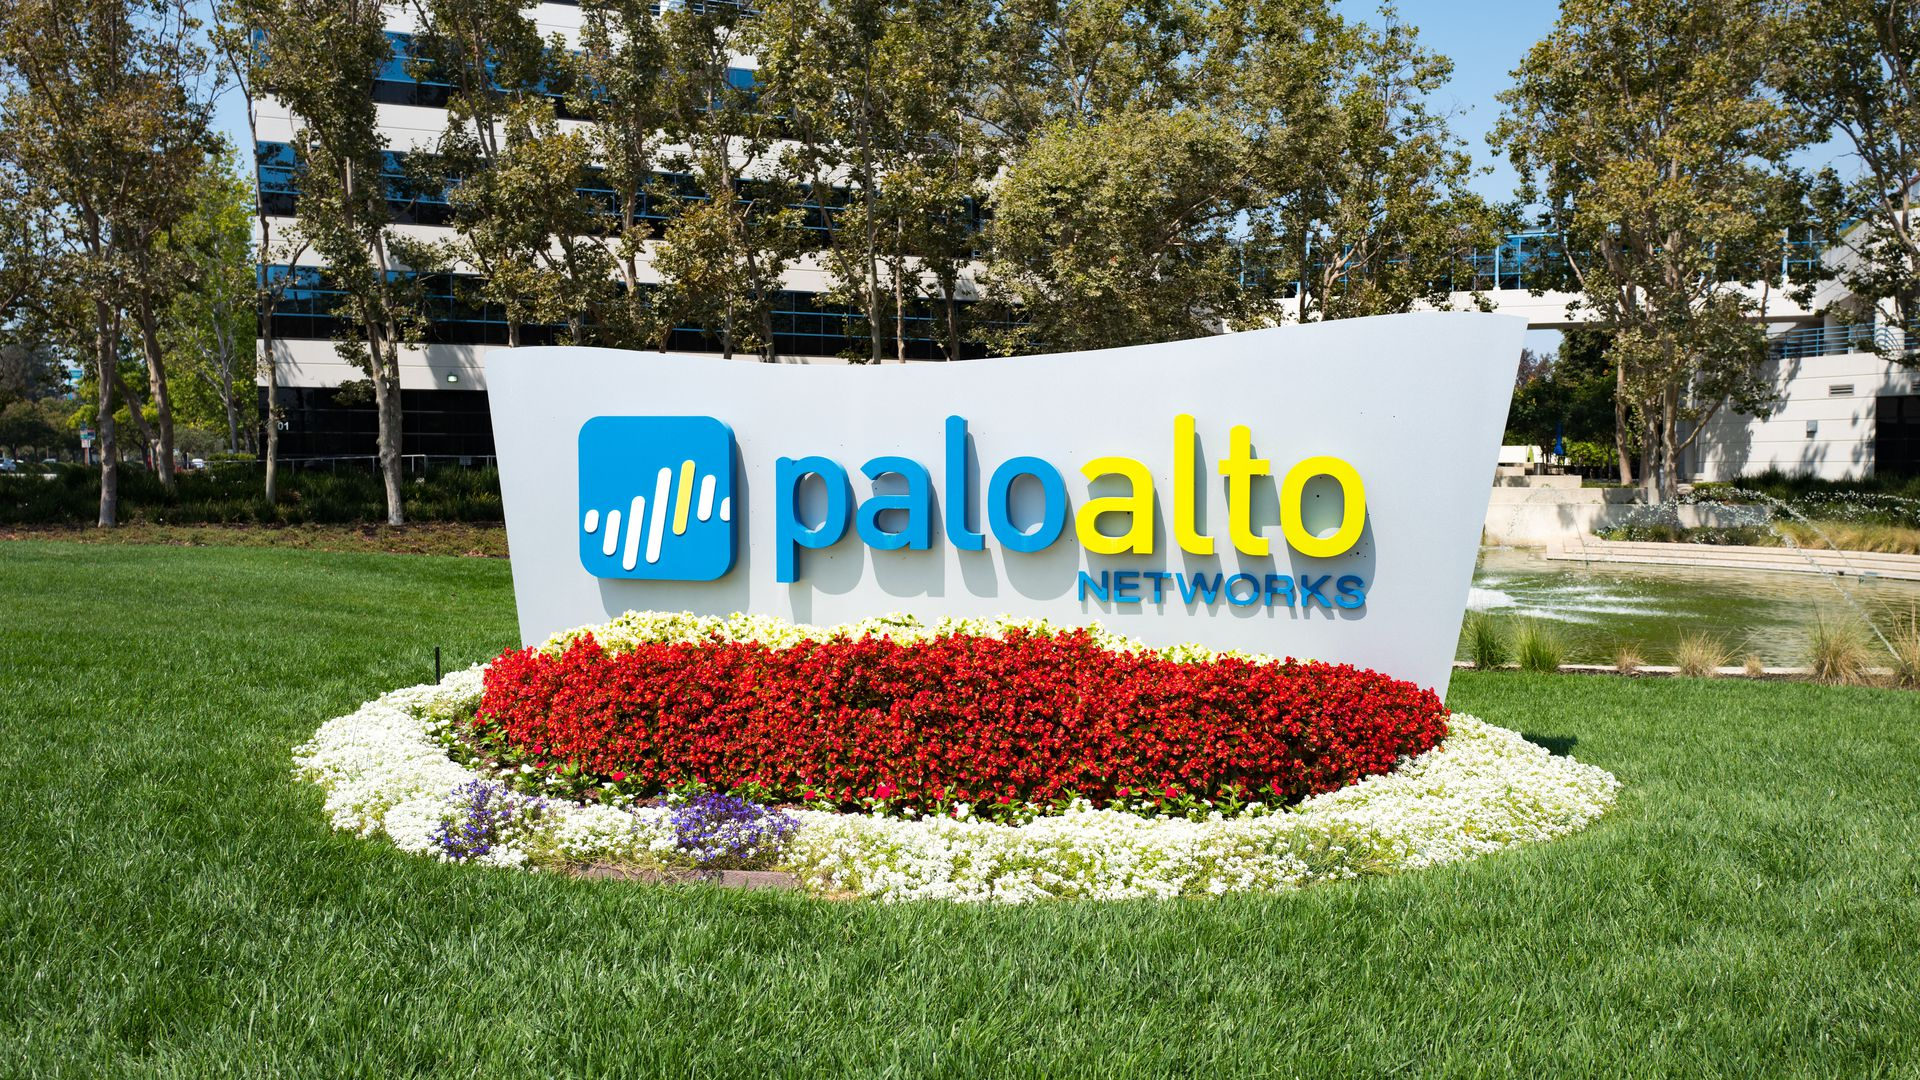 Palo Alto Networks headquarters